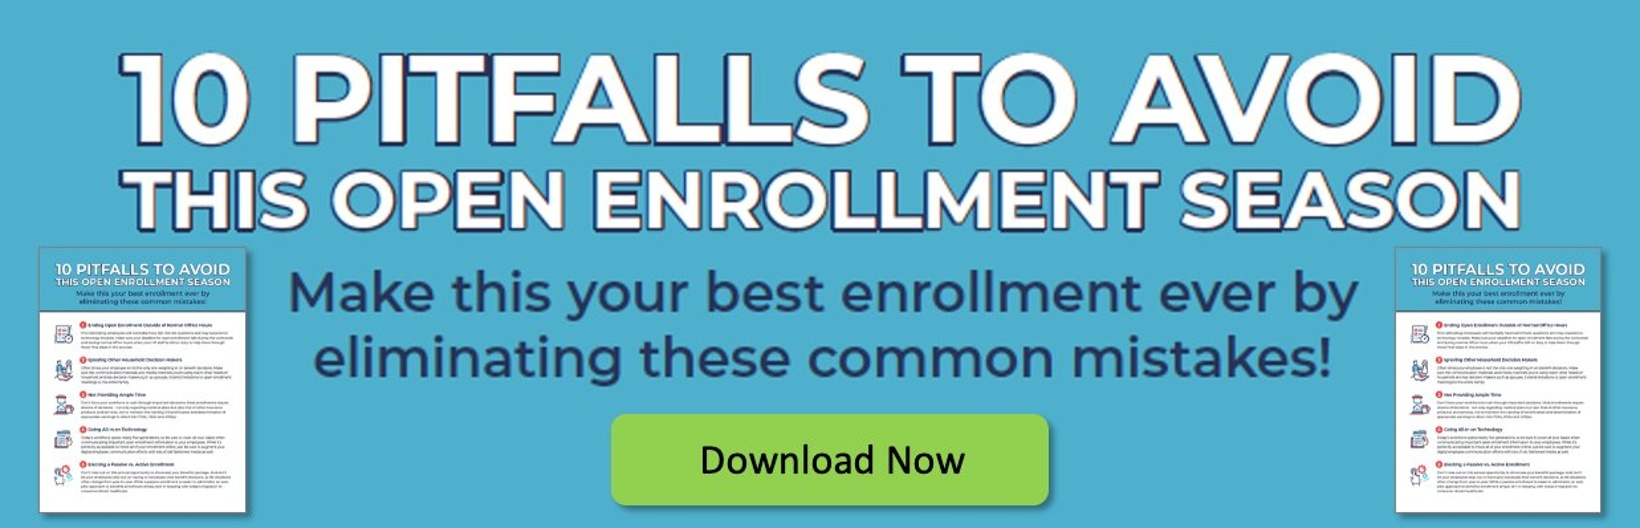 10 Pitfalls To Avoid This Open Enrollment Season CTA